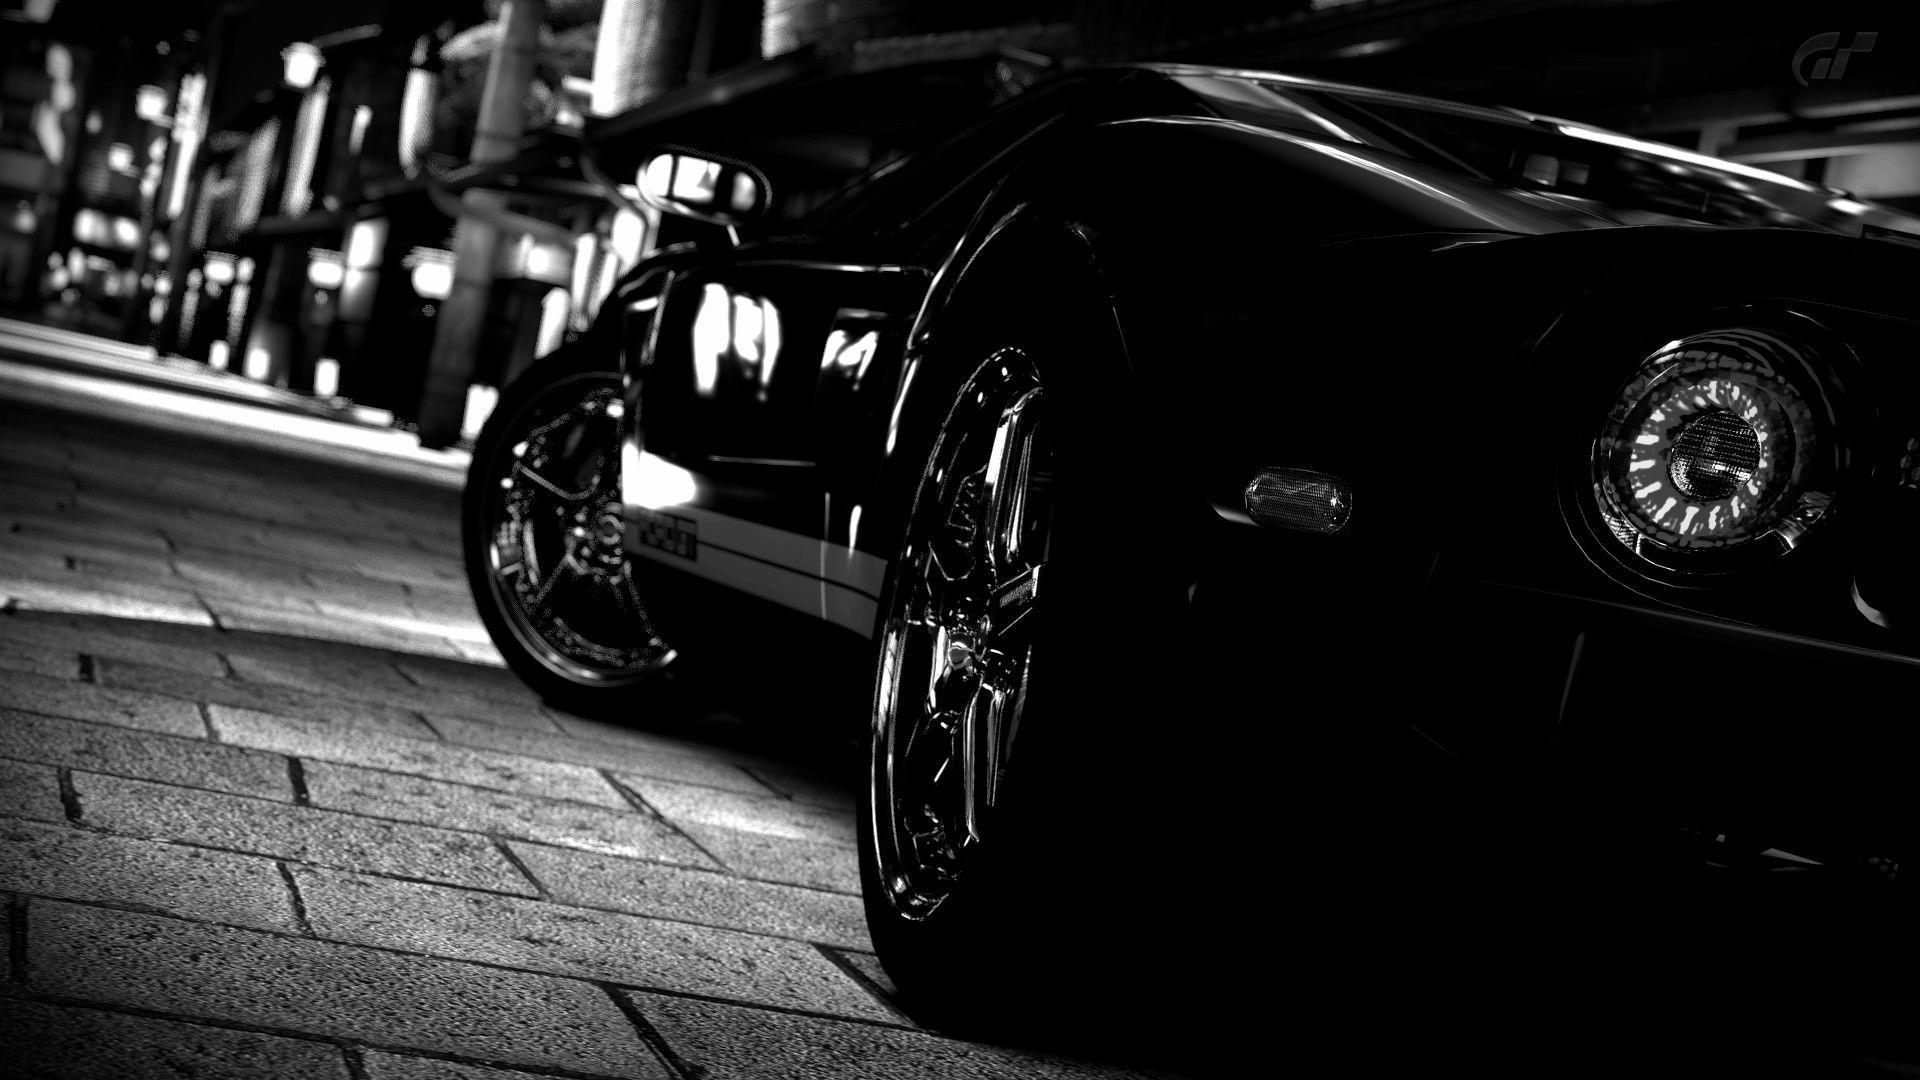 Vehicles For U003e Cars Wallpaper Hd For Desktop Black